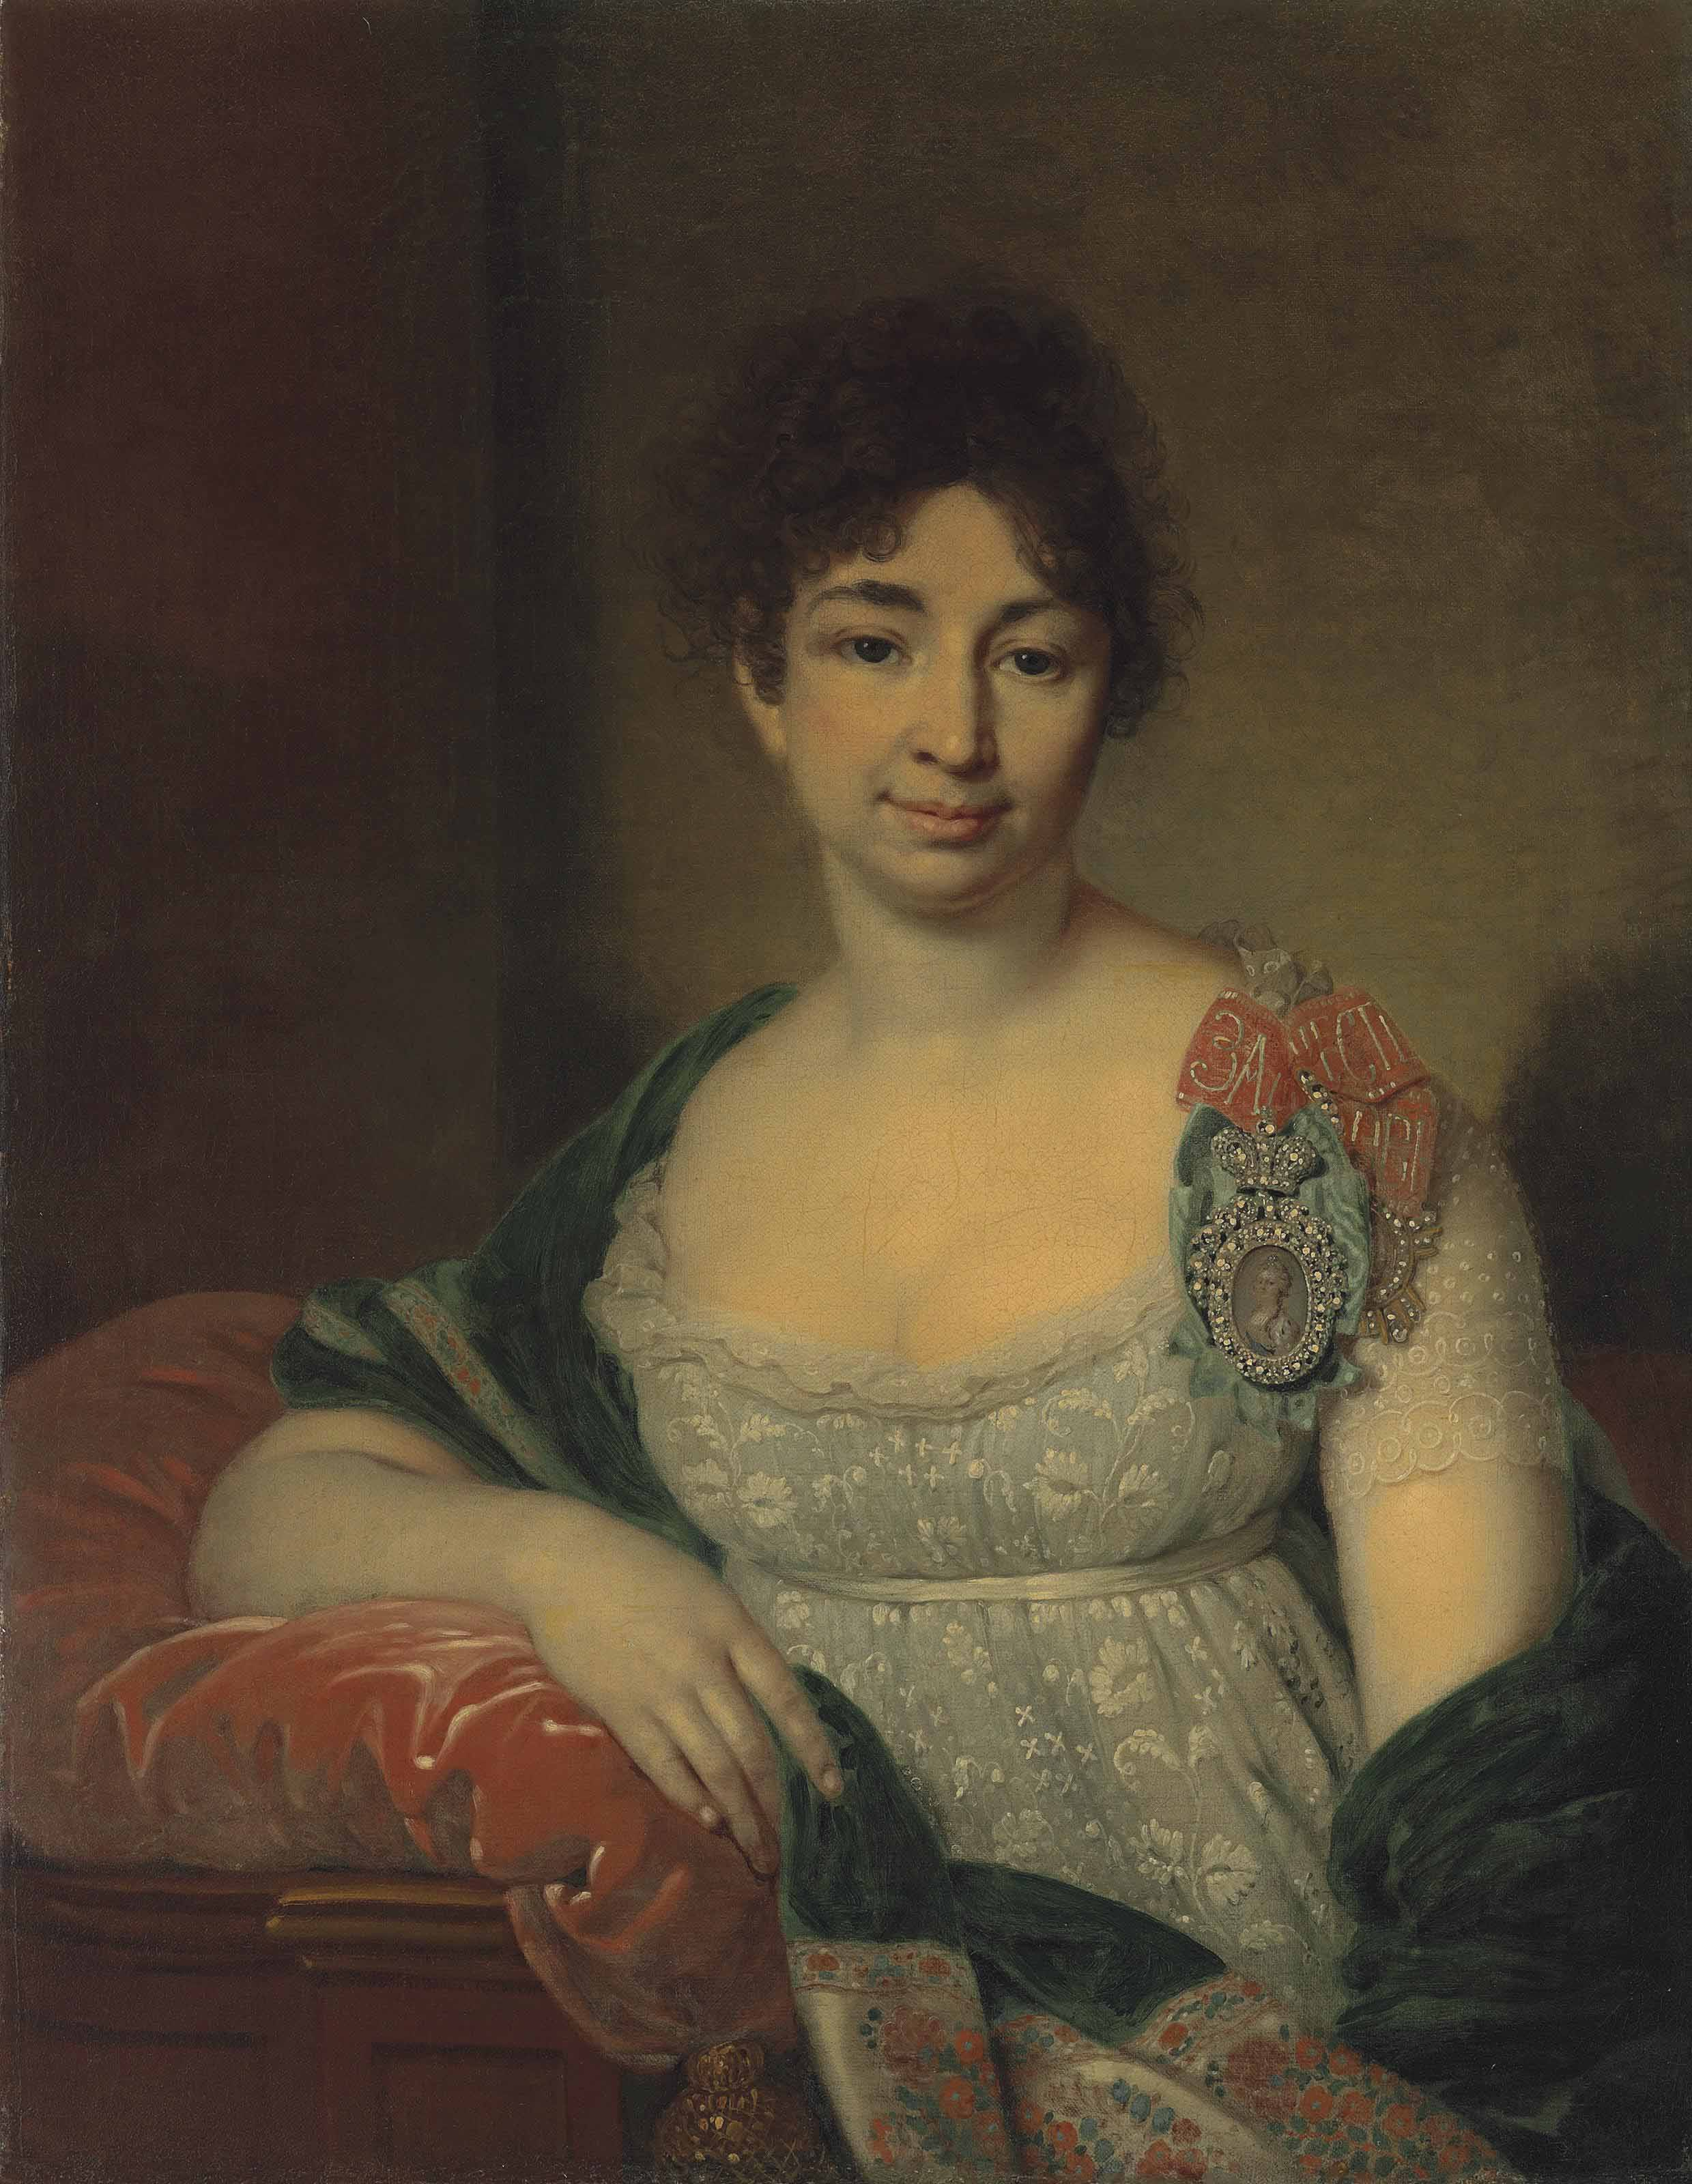 Portrait of Princess Ekaterina Nikolaevna Lopukhina, née Shetneva (1763-1839), wearing a Lady of Honour insignia and the Order of St Catherine